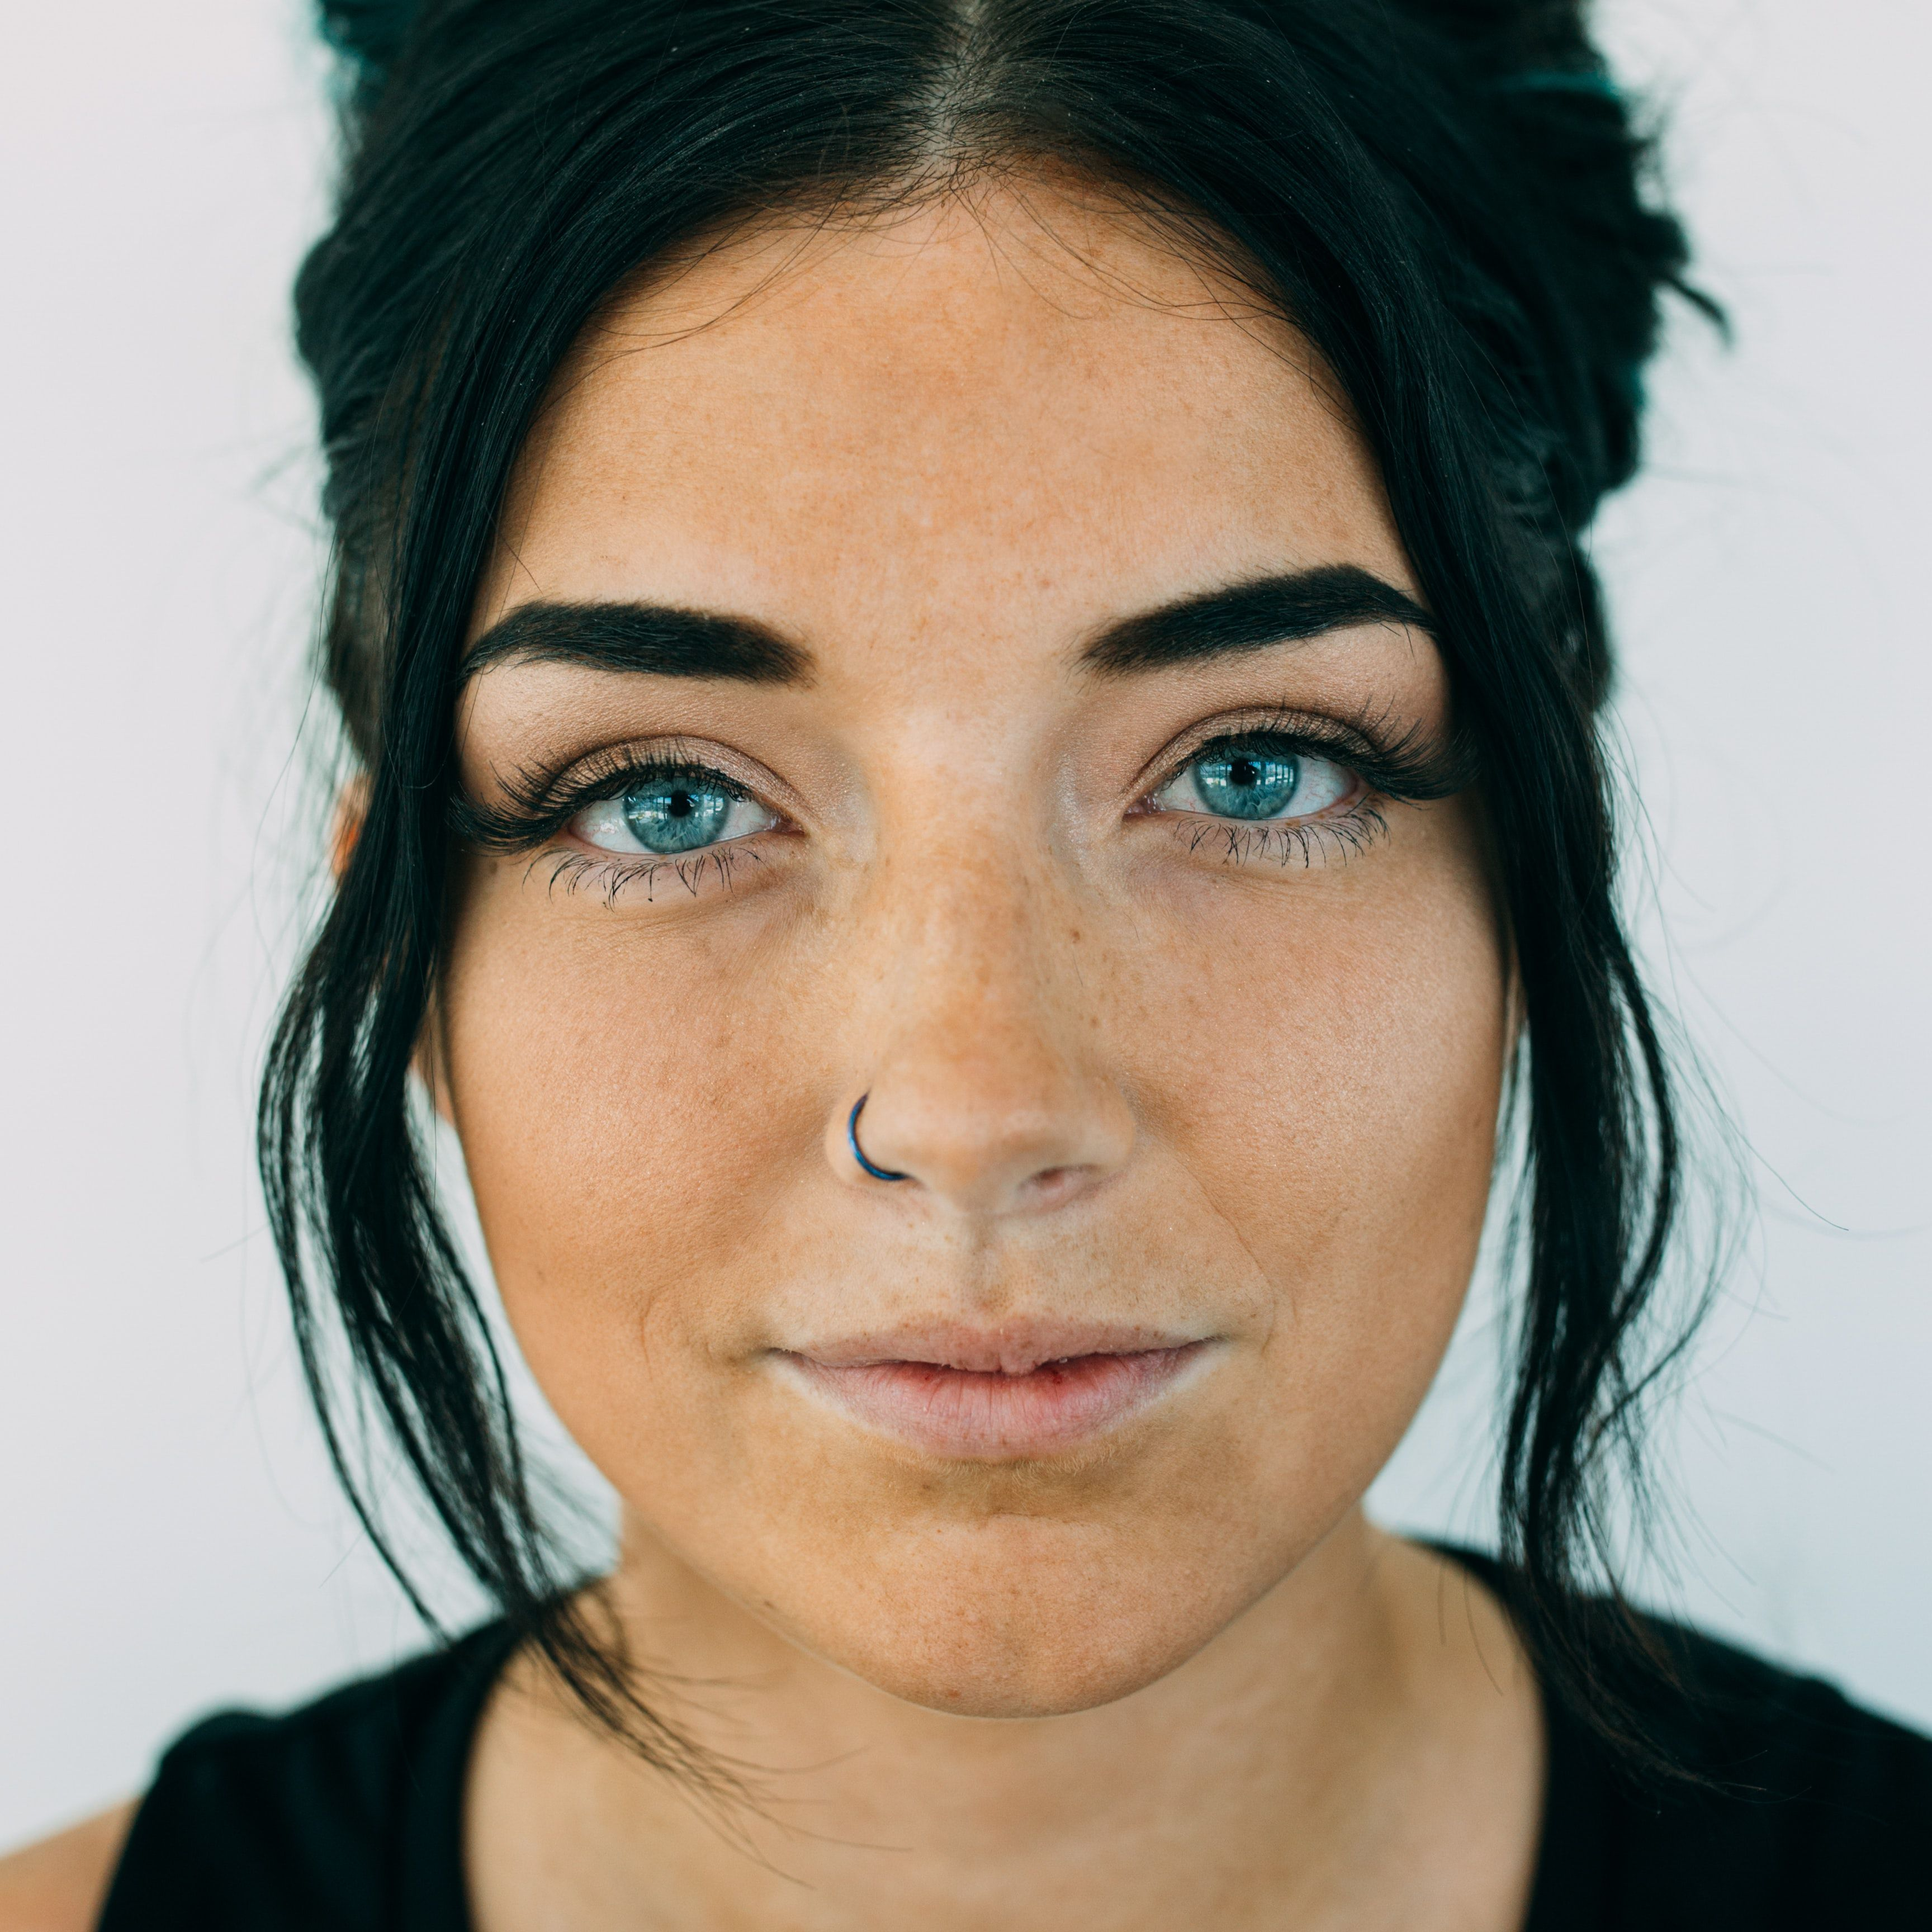 How To Land A Tattoo Or Piercing Apprenticeship